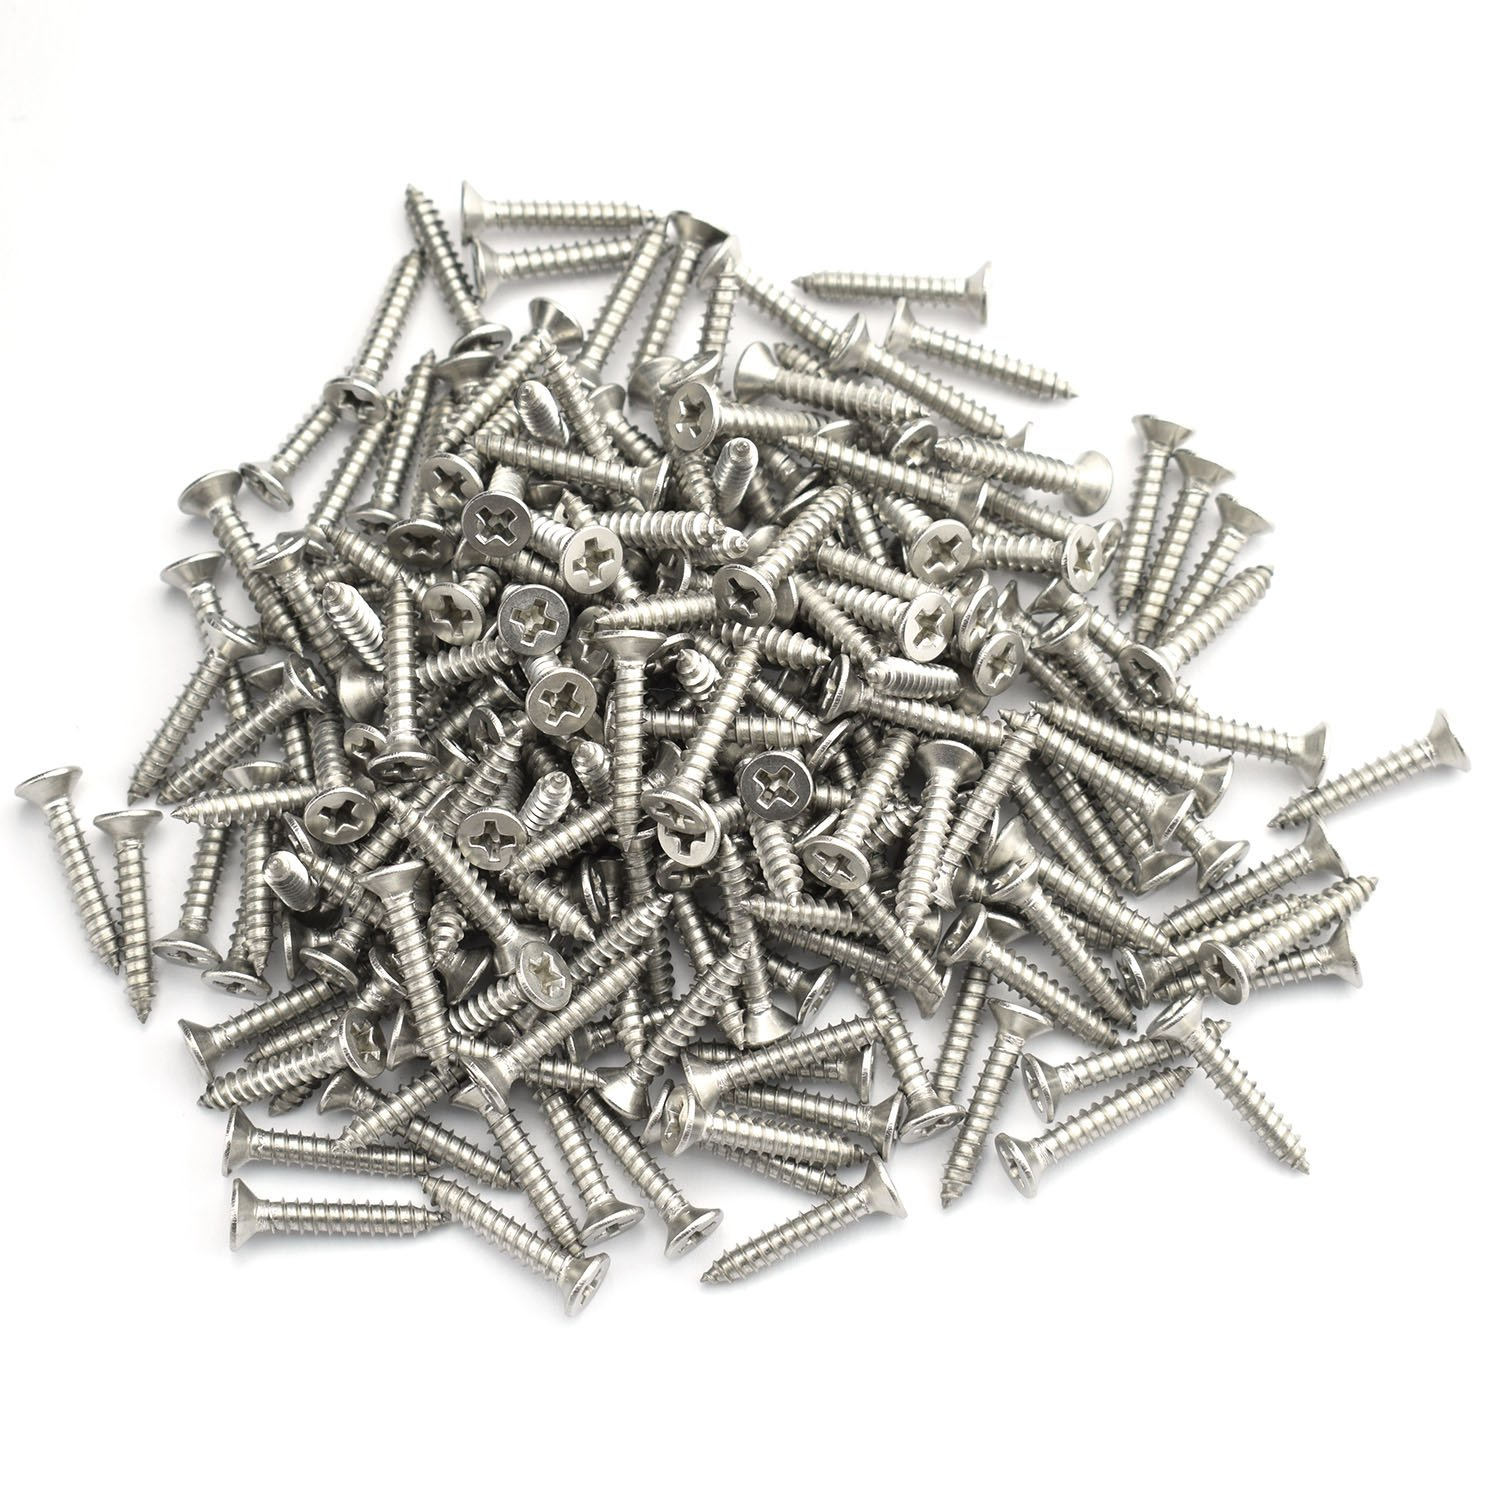 200pcs #6 x 3/4'' Self Drilling Screw 304 Stainless Steel Hardware Accessories Philips Drive Flat Head Self Tapping Screw 20mm by Ruiling (Image #3)